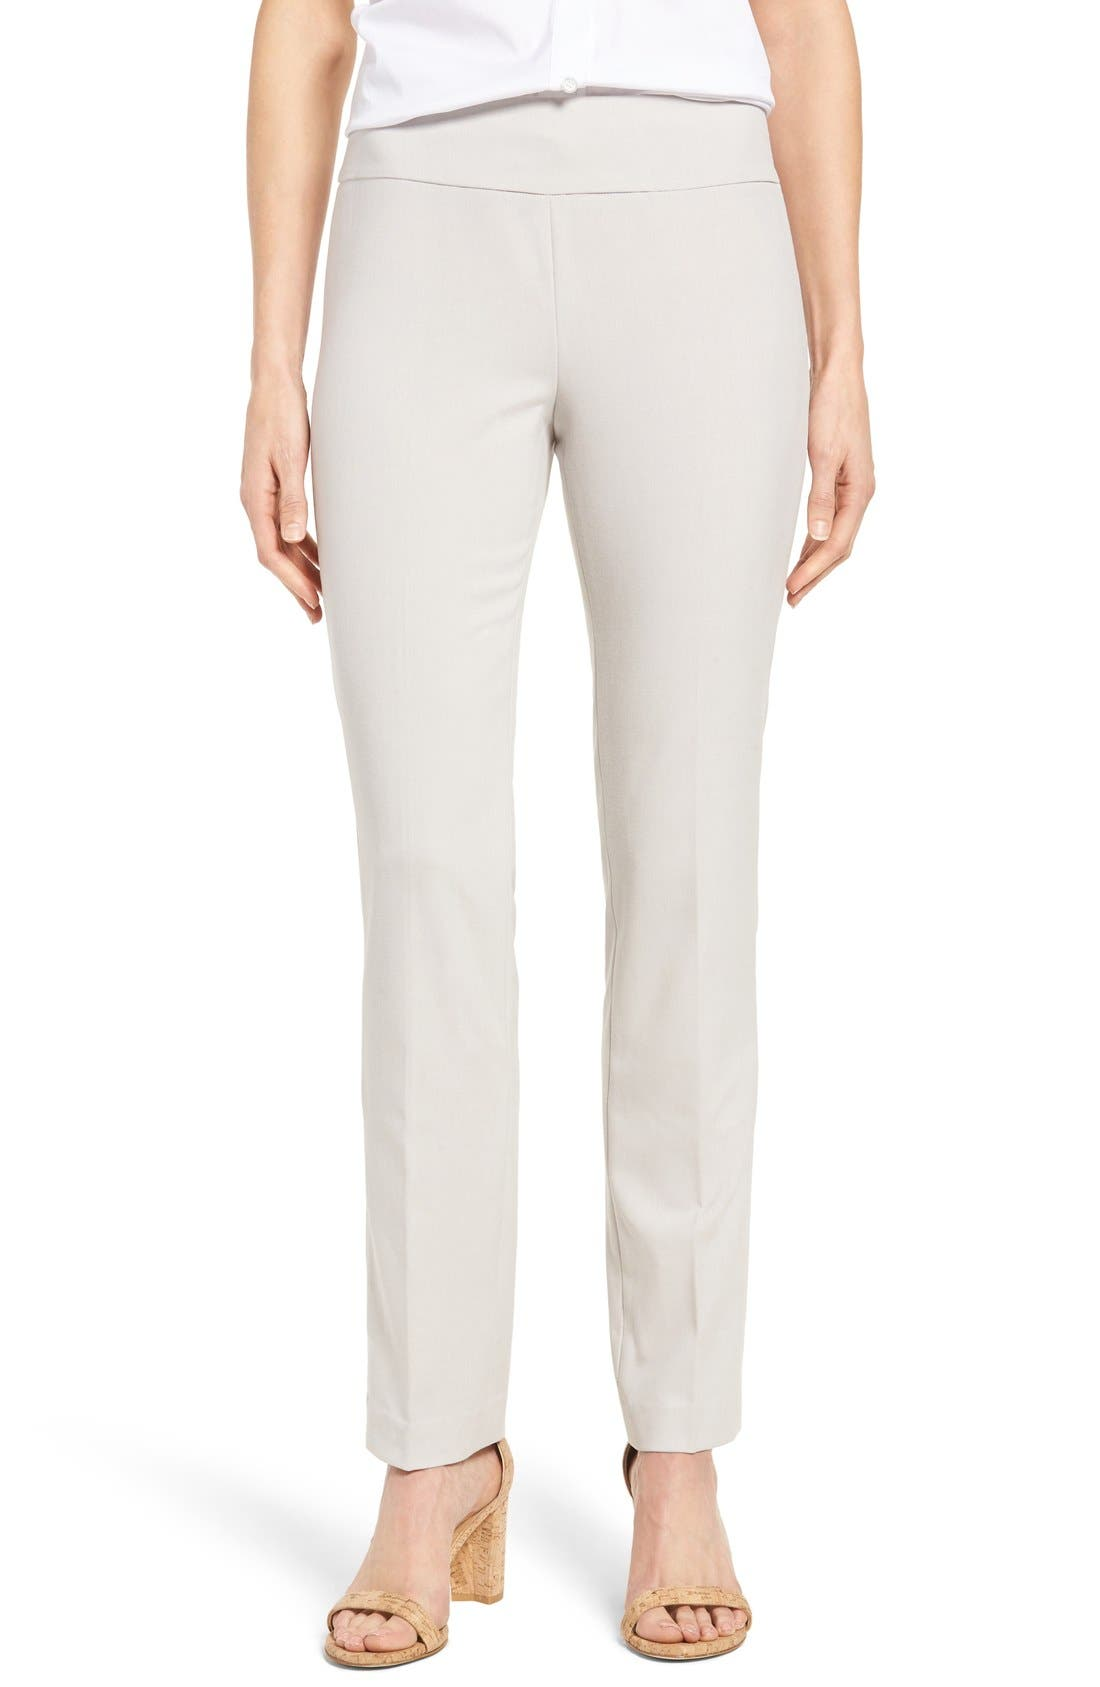 Alternate Image 1 Selected - NIC+ZOE Stretch Knit Slim Leg Pants